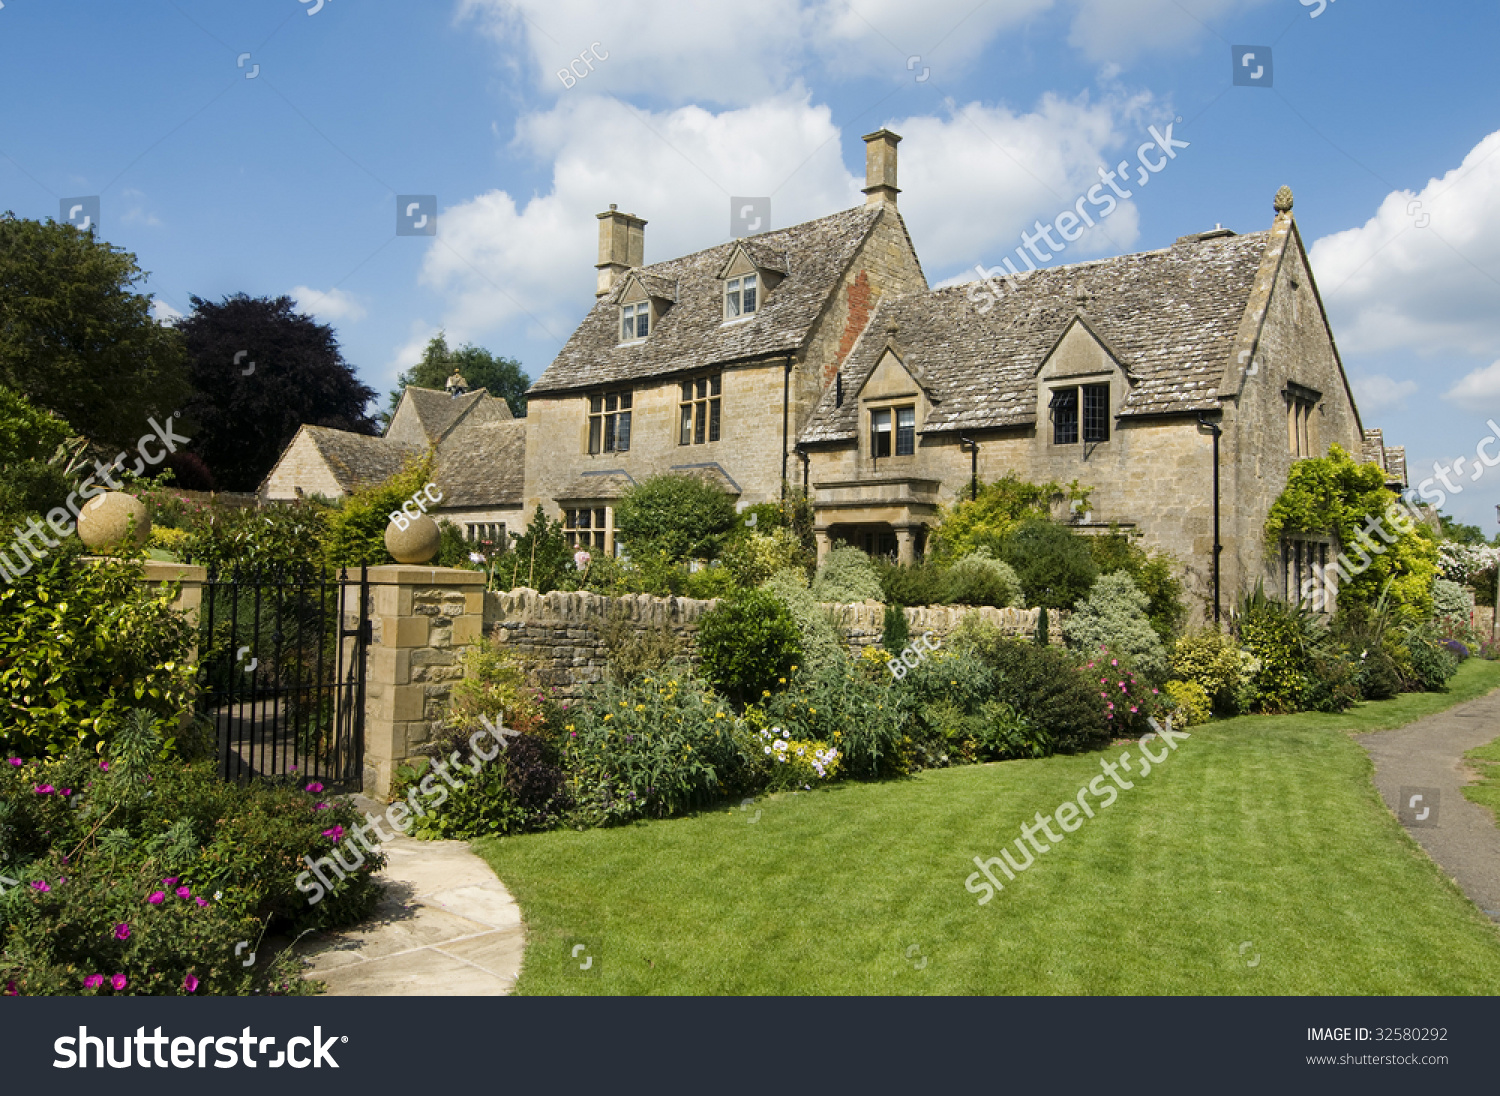 Pleasing Beautiful Rural Cotsworld Stone Homes In Countryside Of England Largest Home Design Picture Inspirations Pitcheantrous